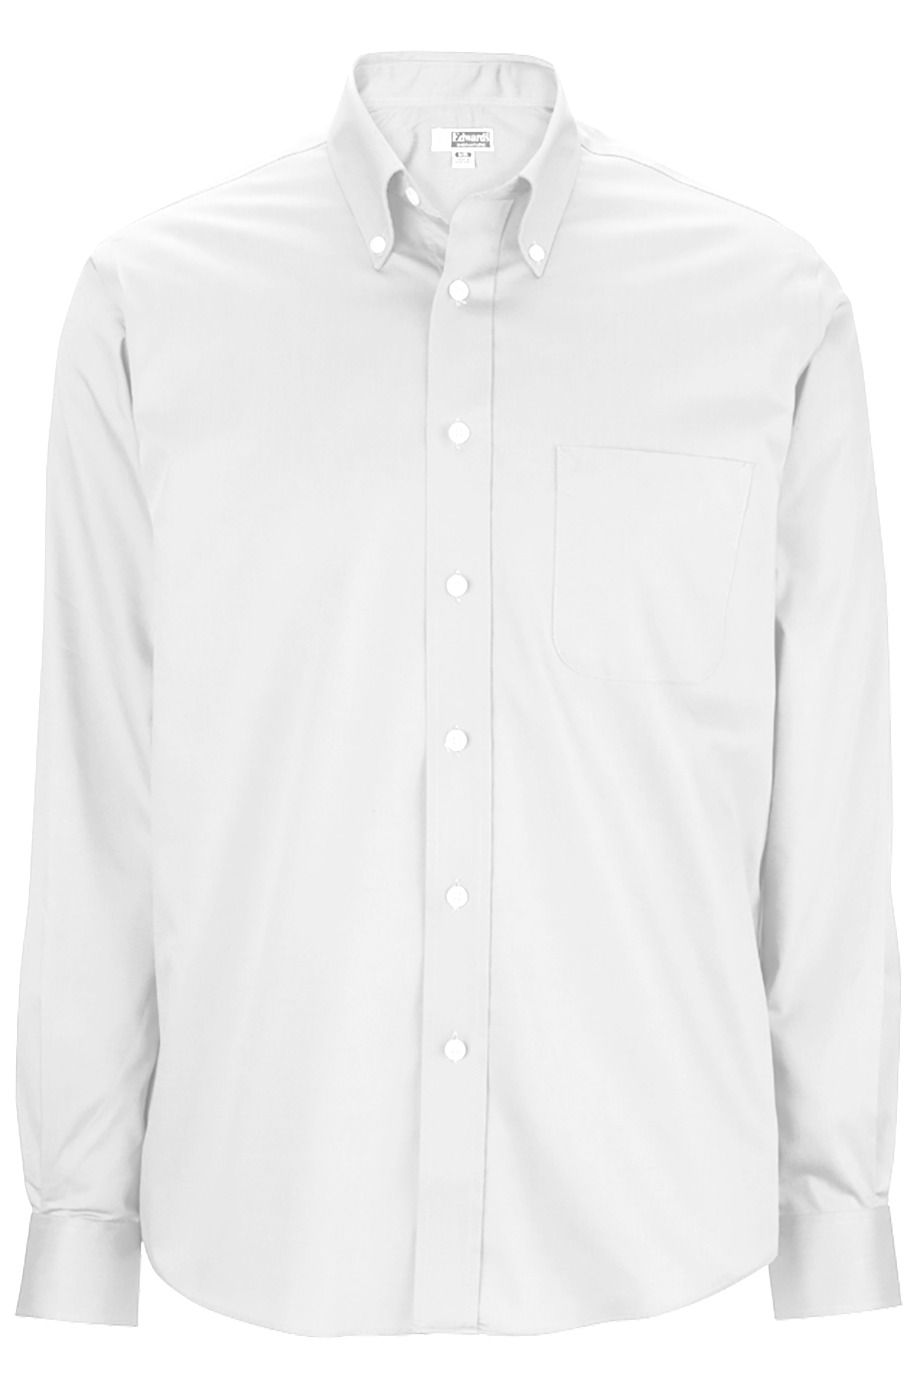 Men's White Oxford Non-Iron Button Down Collar Dress Shirt